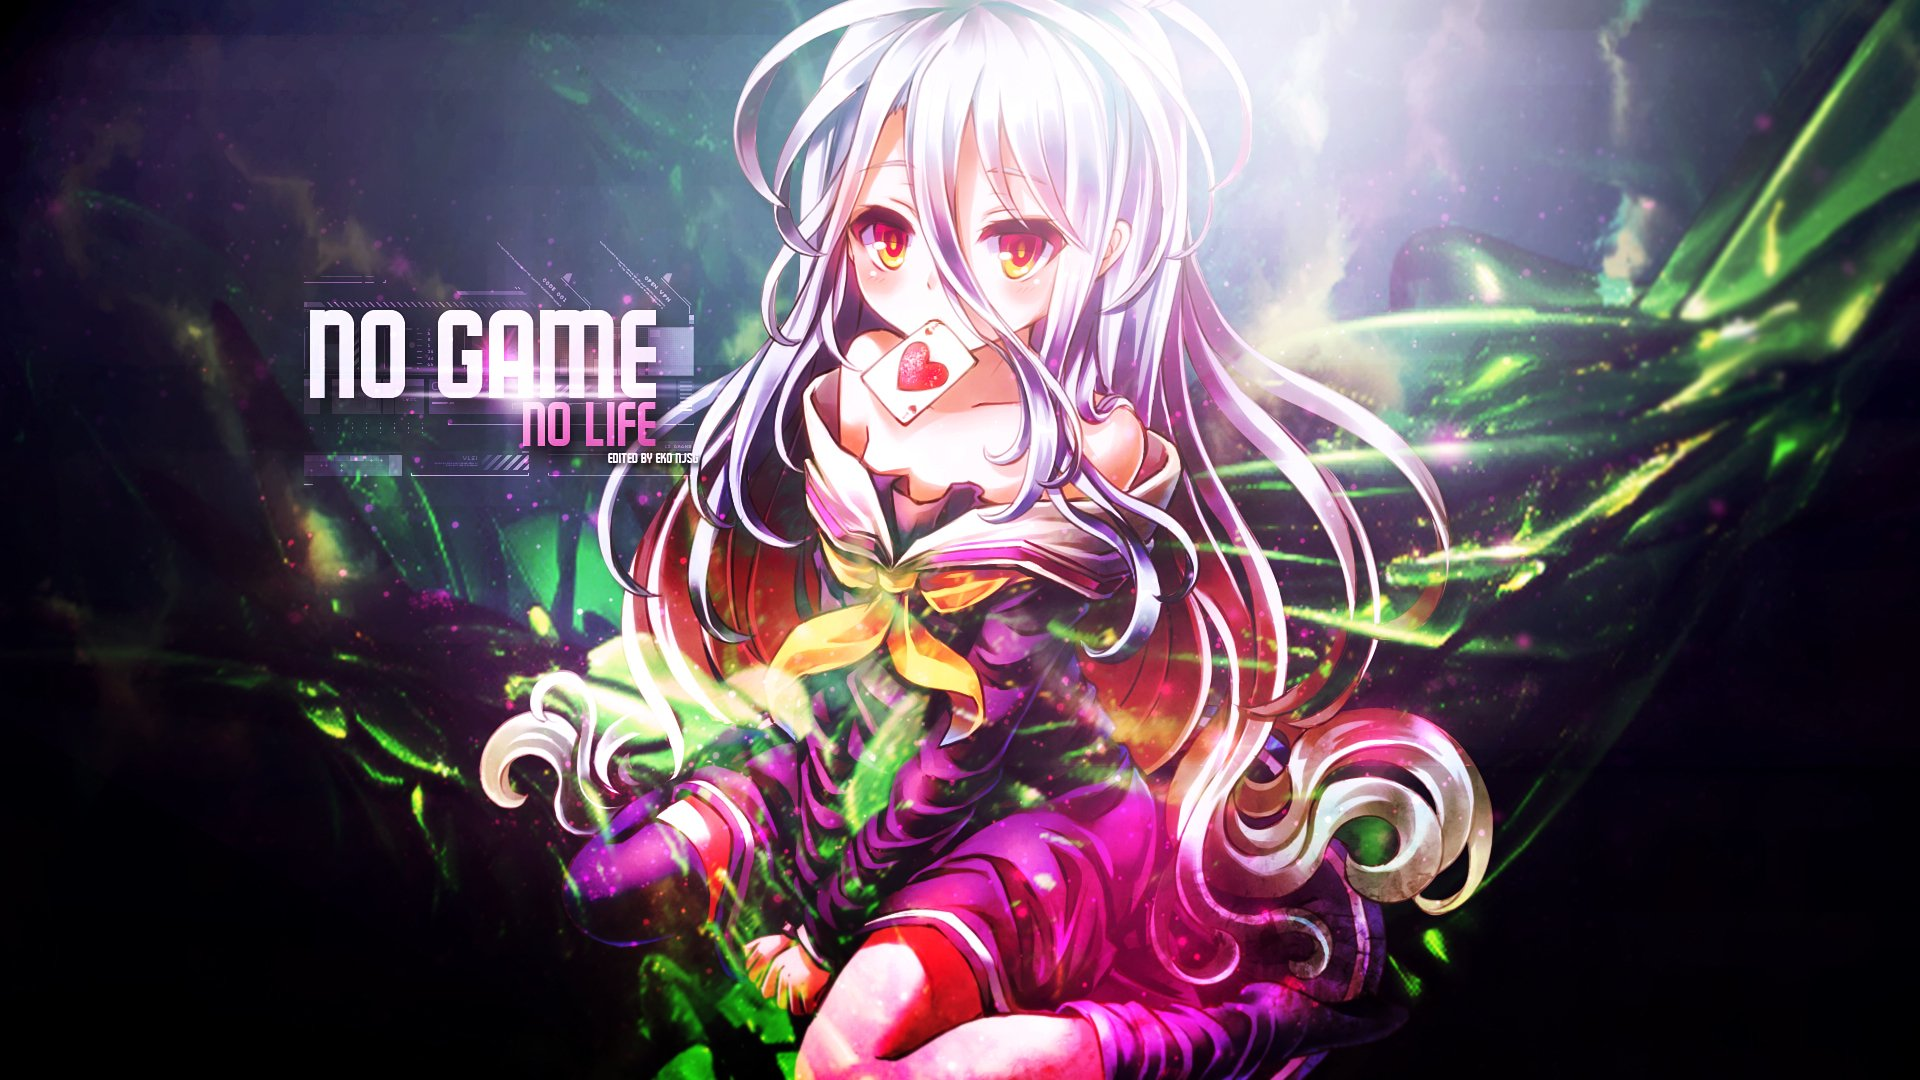 Shiro No Game No Life Wallpaper